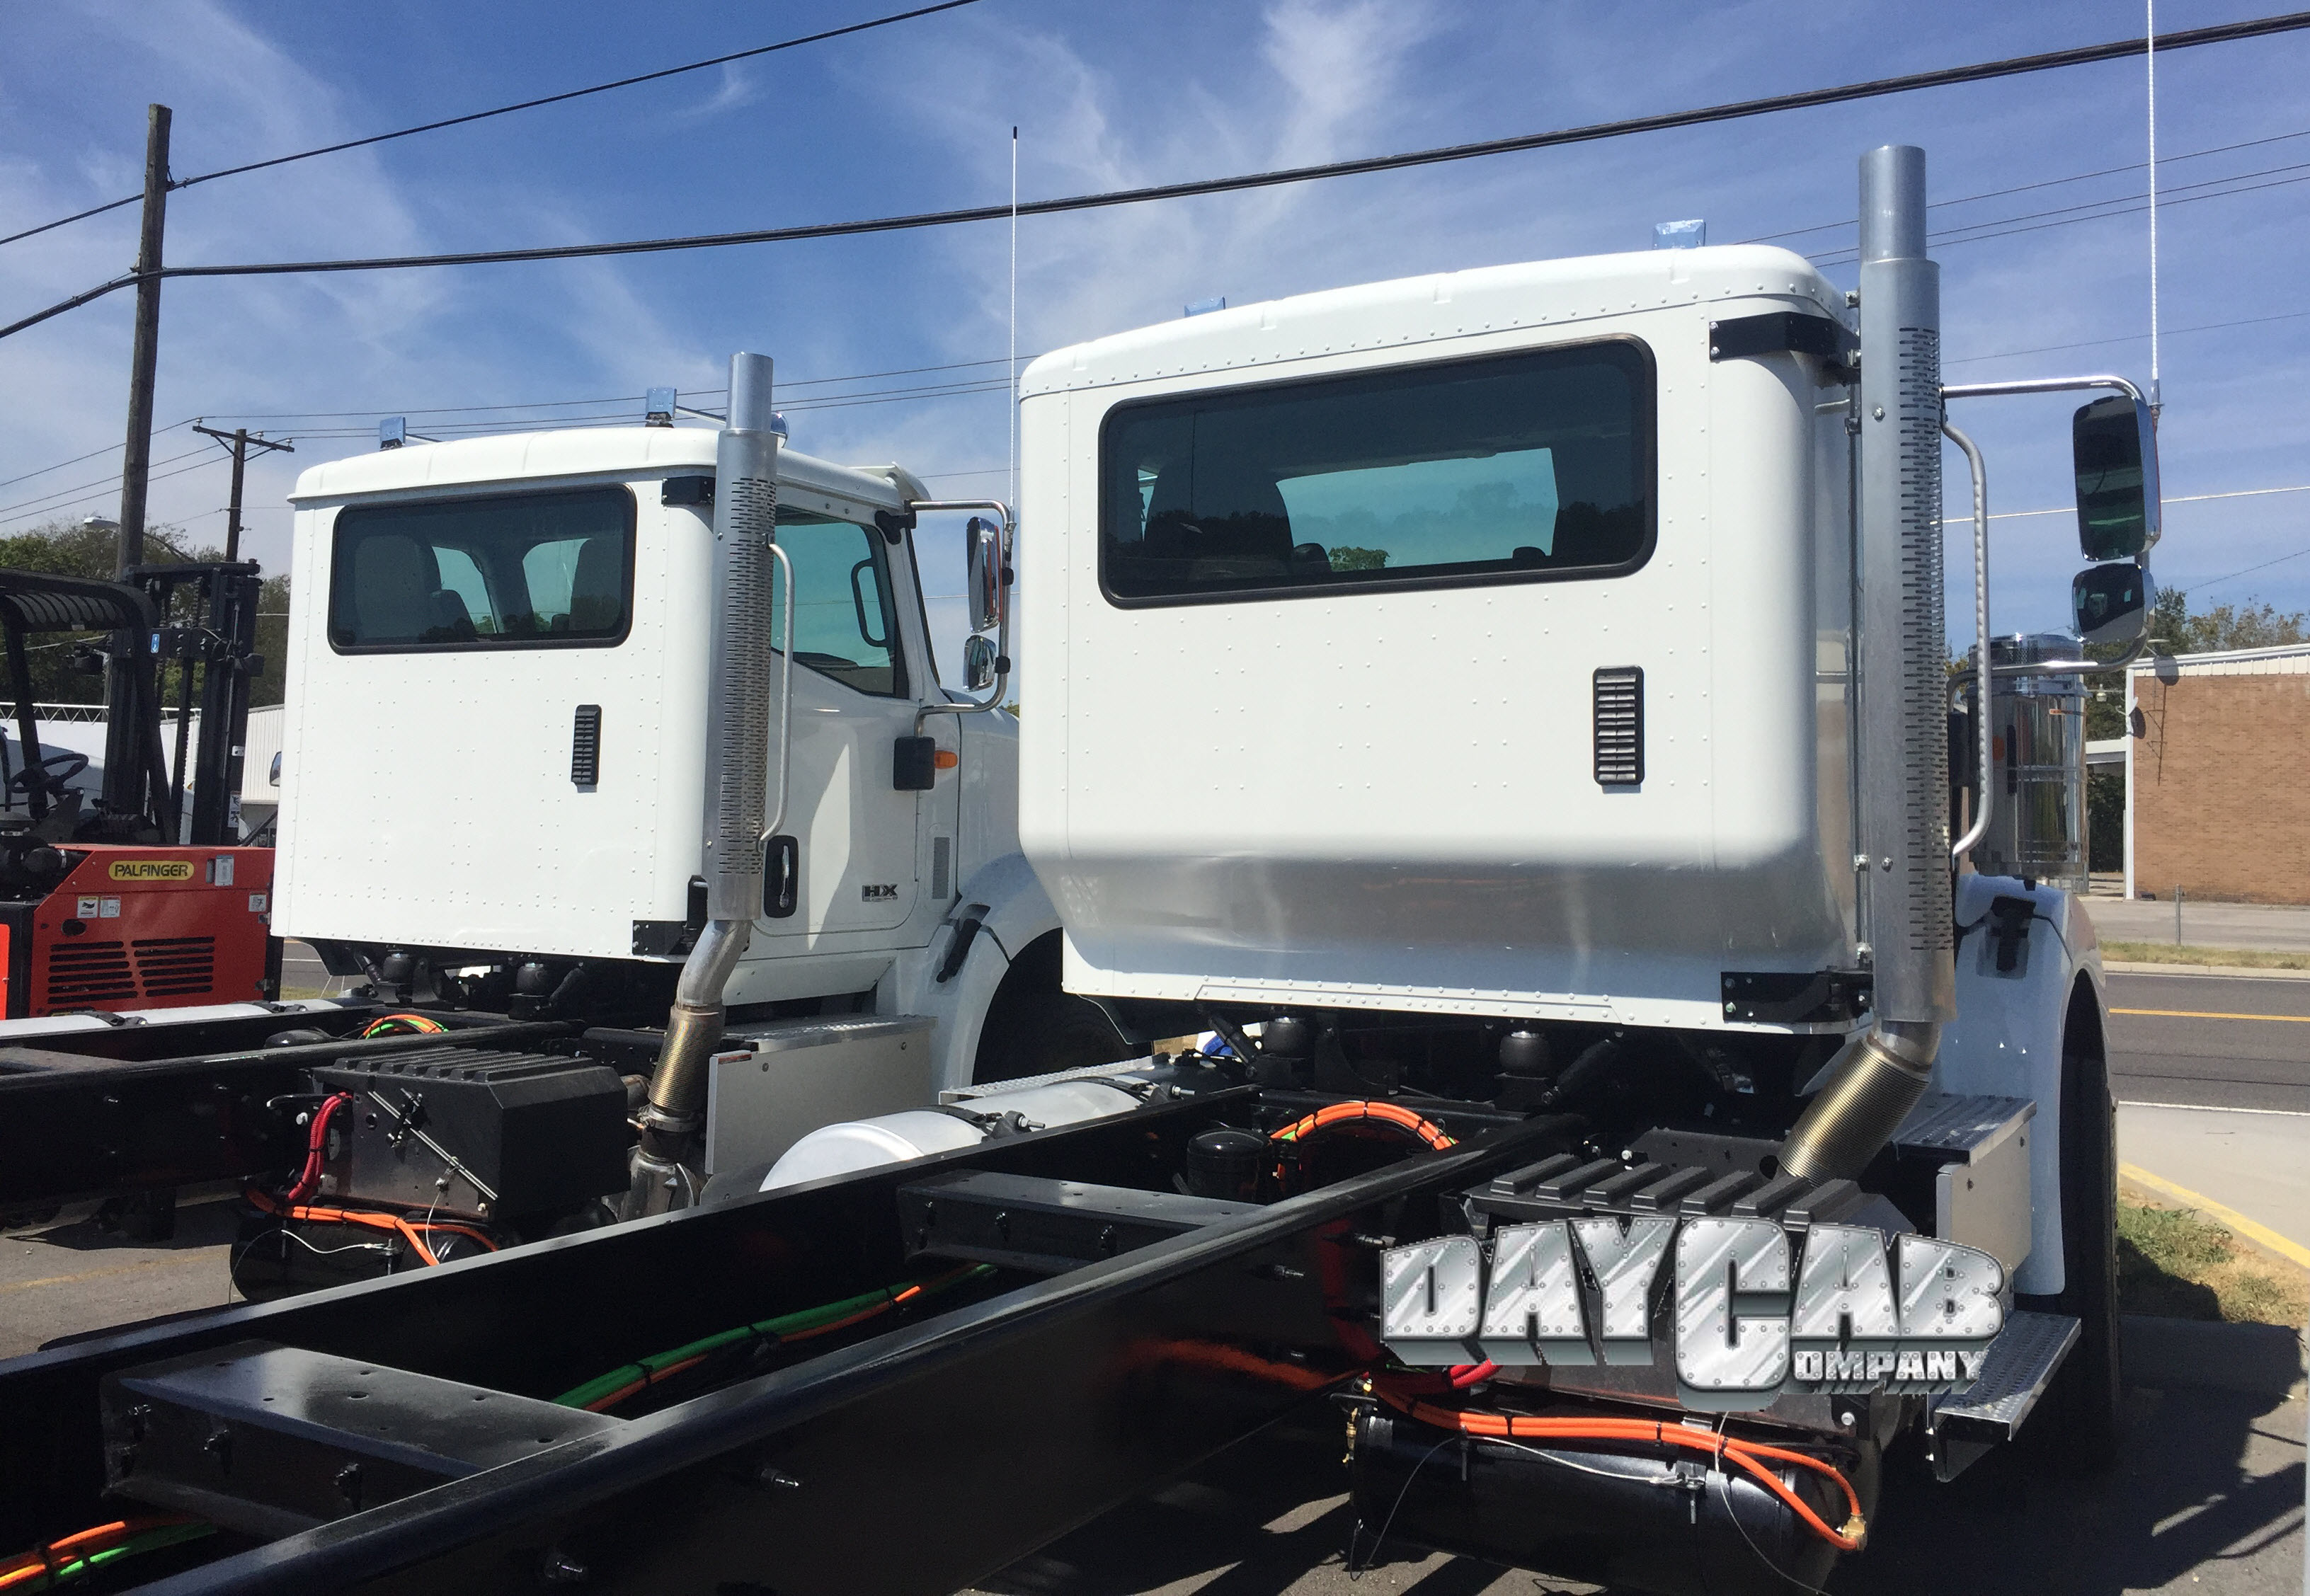 1 International HX Extended Cab - Daycab Company